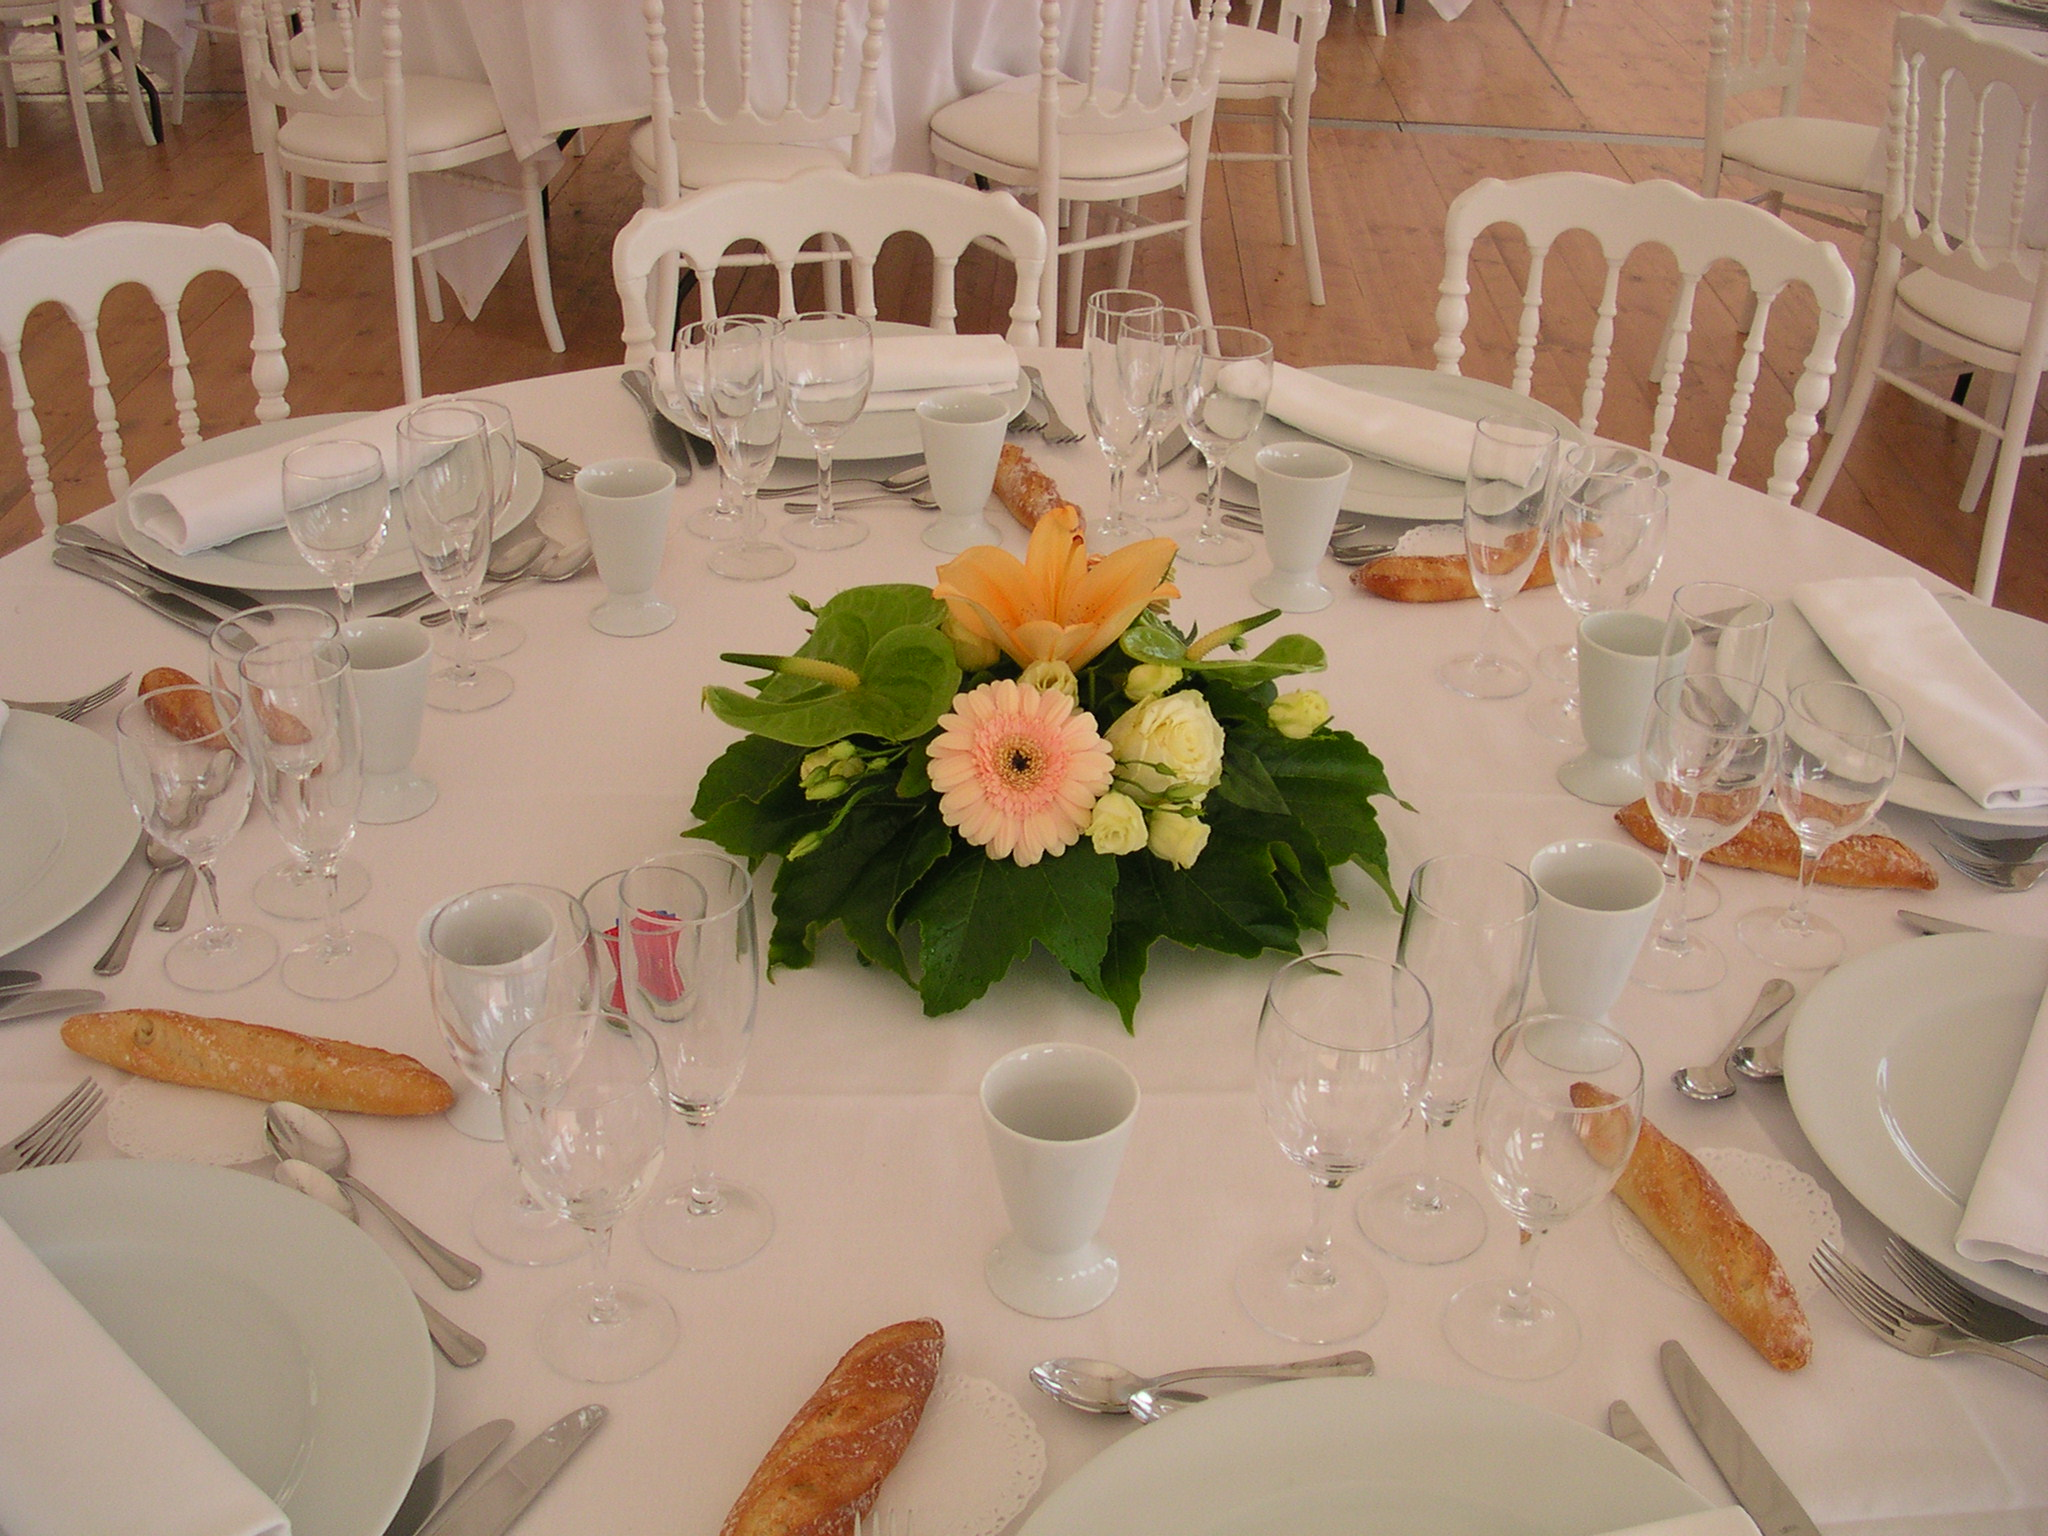 Passion fleurs - Art floral moderne centre de table ...